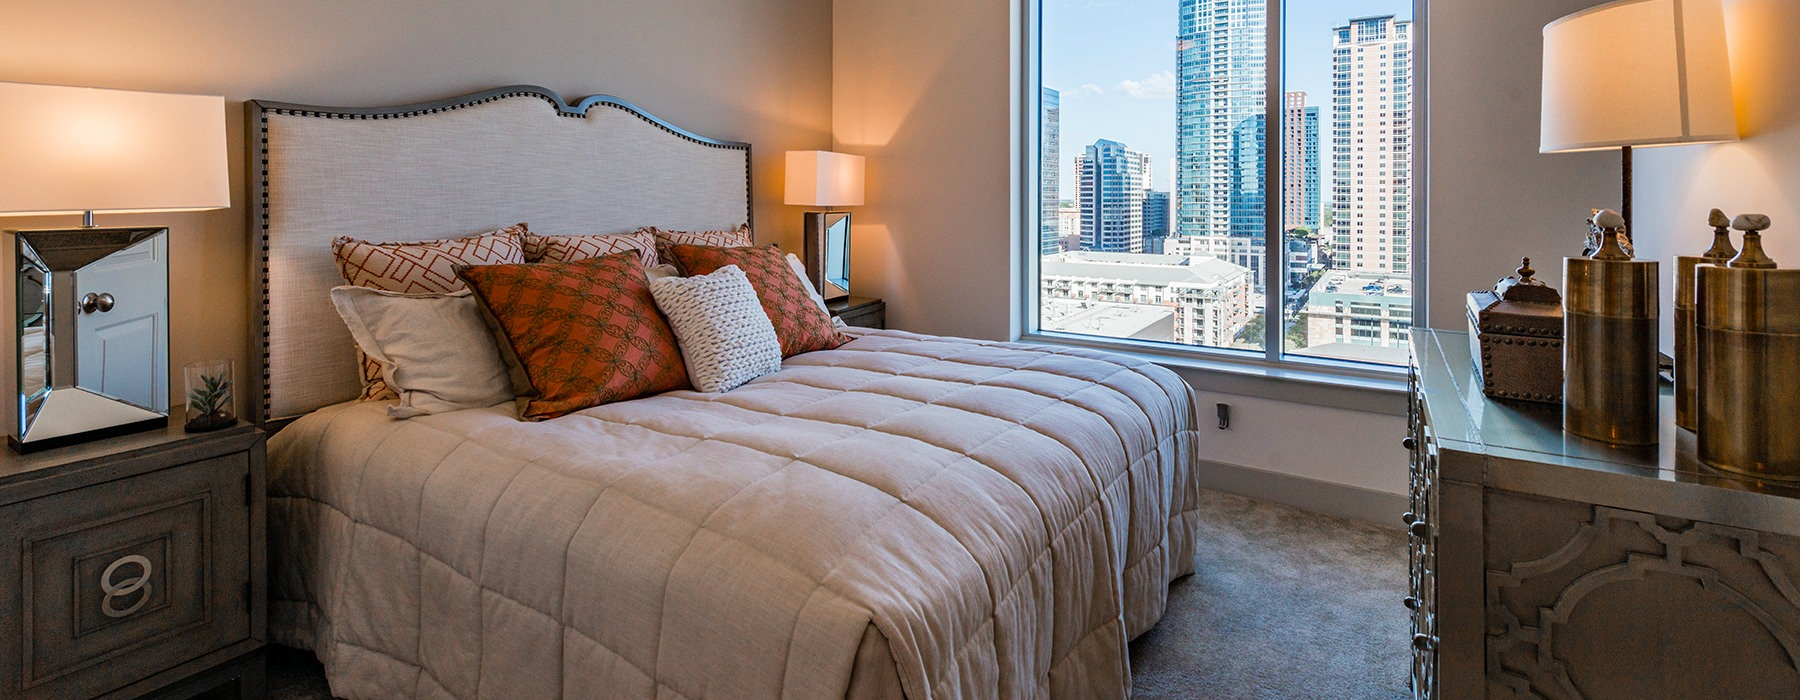 Spacious and well lit bedroom with plush carpet and large windows